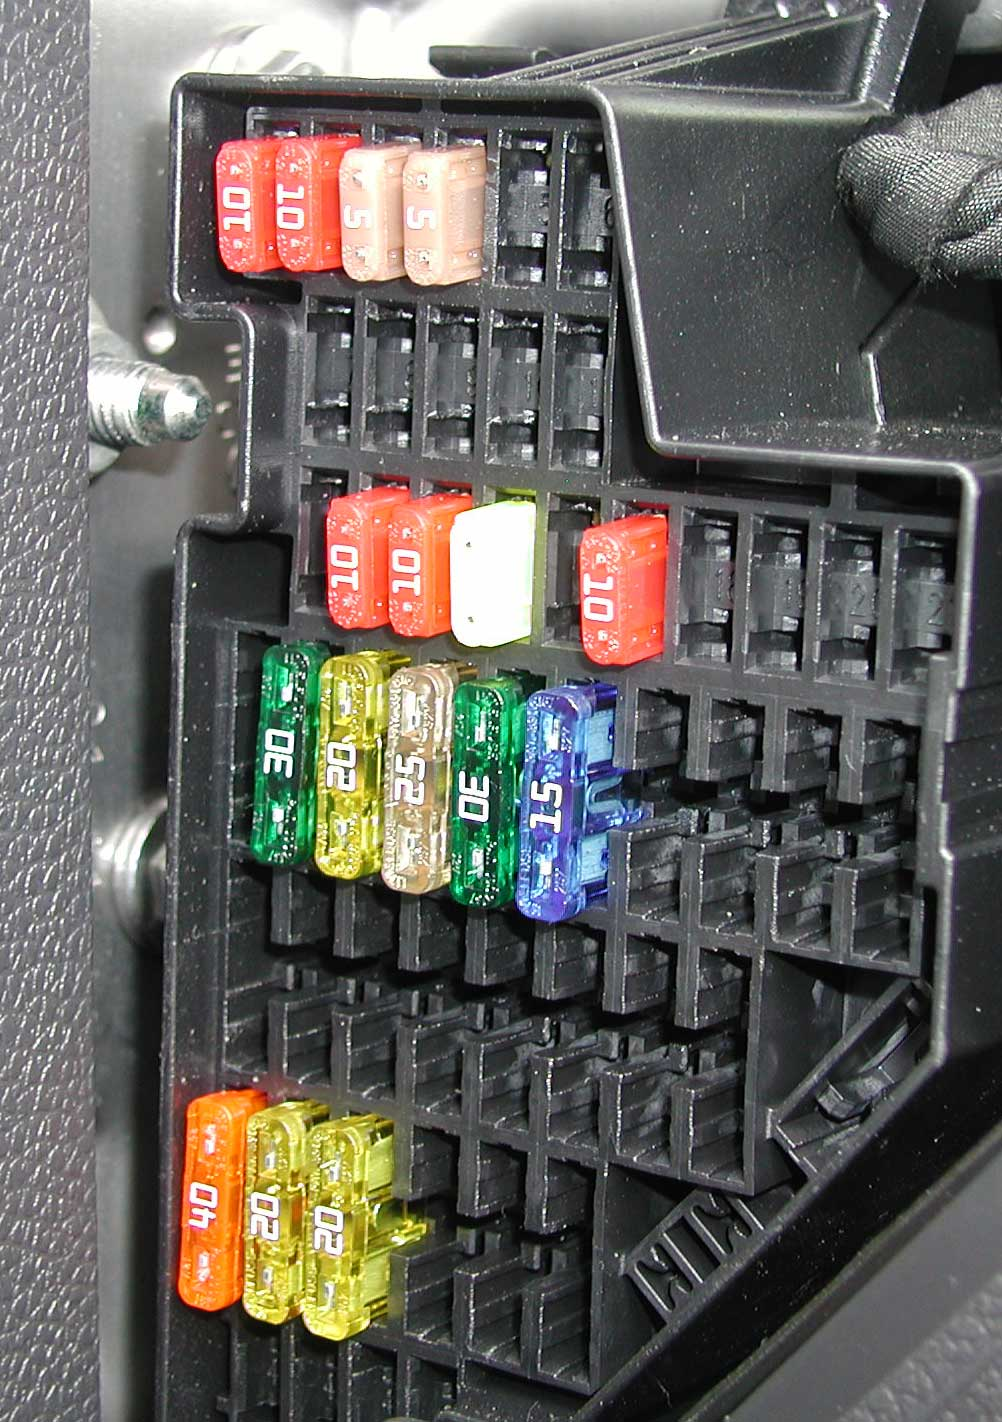 2006 Vw Jetta Tdi Fuse Diagram Wiring Library 2003 Box 2011 Golf Picture Please Tdiclub Forums Rh Com